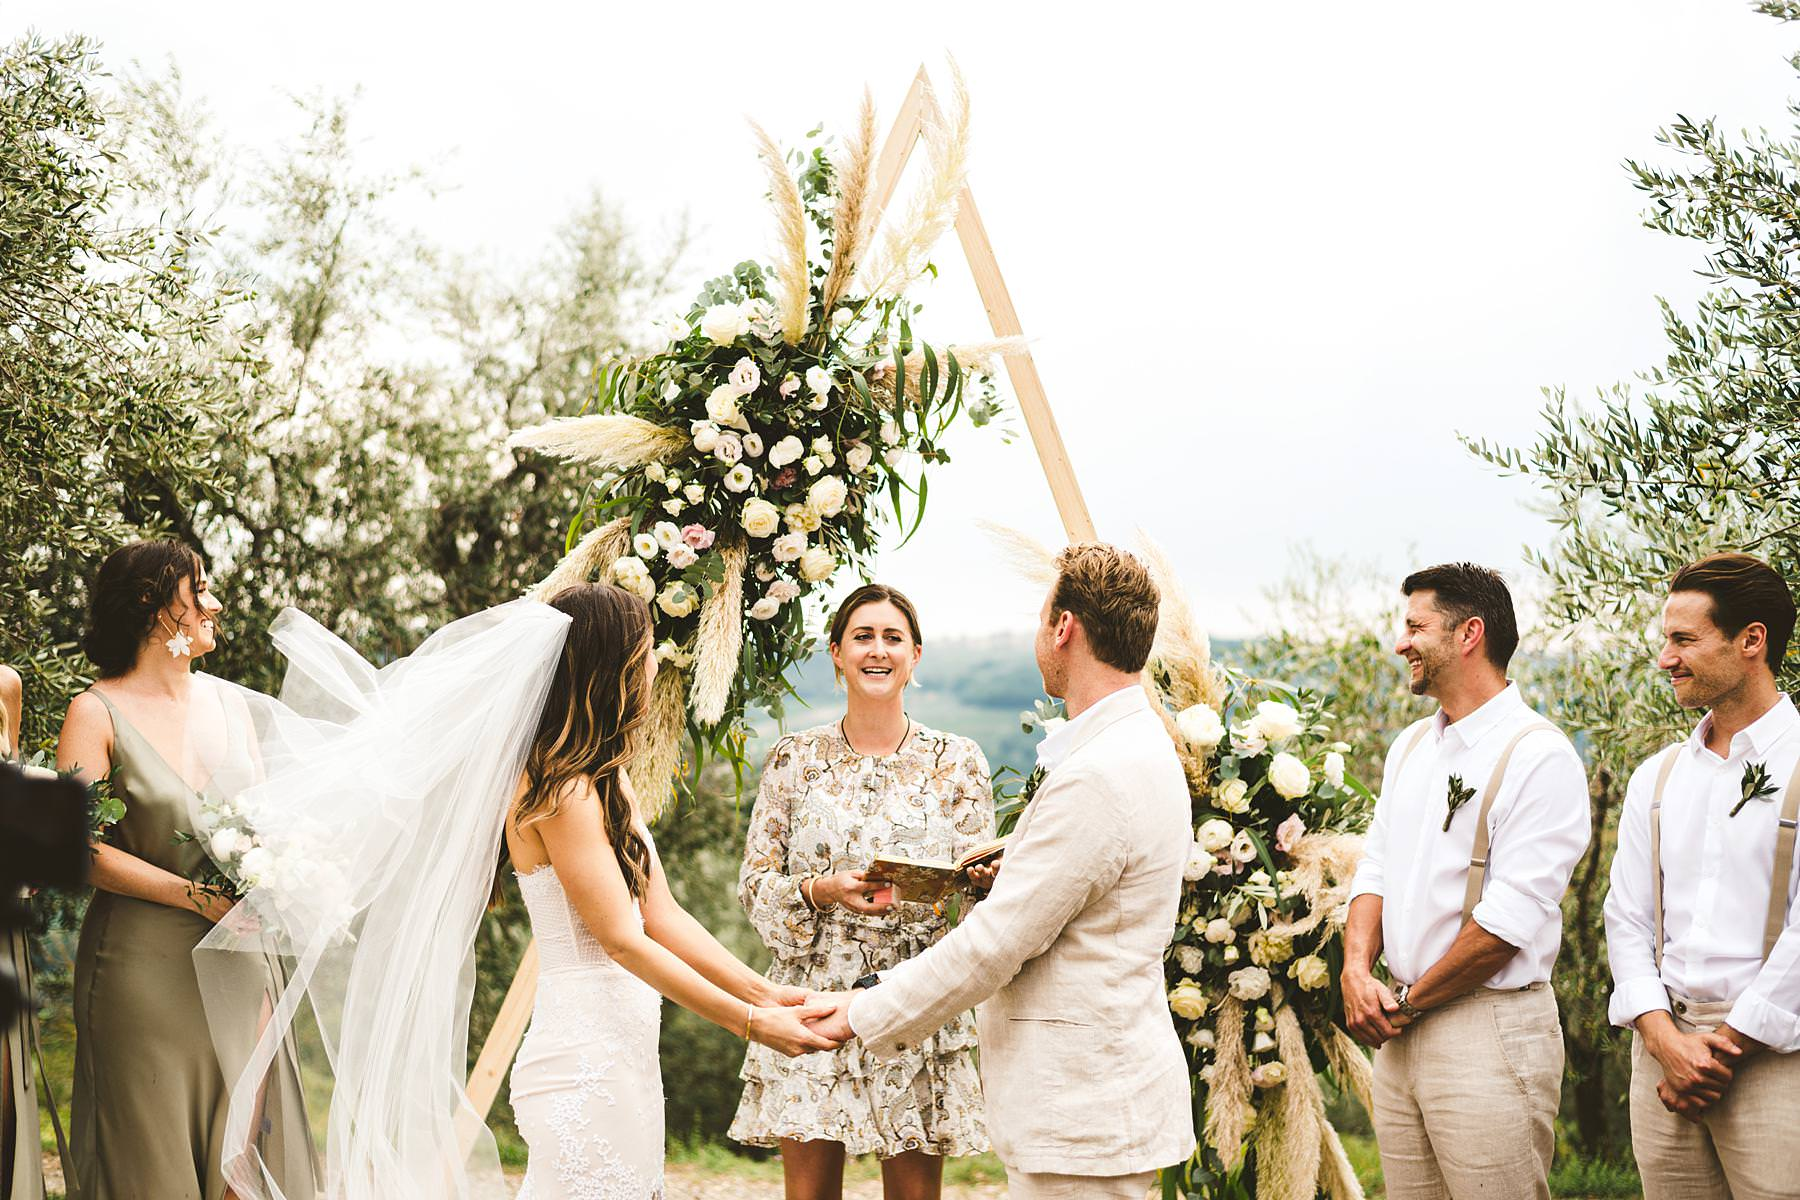 Modern and unusual wedding framed by the olive groves of Chianti near the historic residence of Villa Il Poggiale in the countryside of Tuscany in Chianti. Love that triangular shape that witnessed the bride and groom promises of love